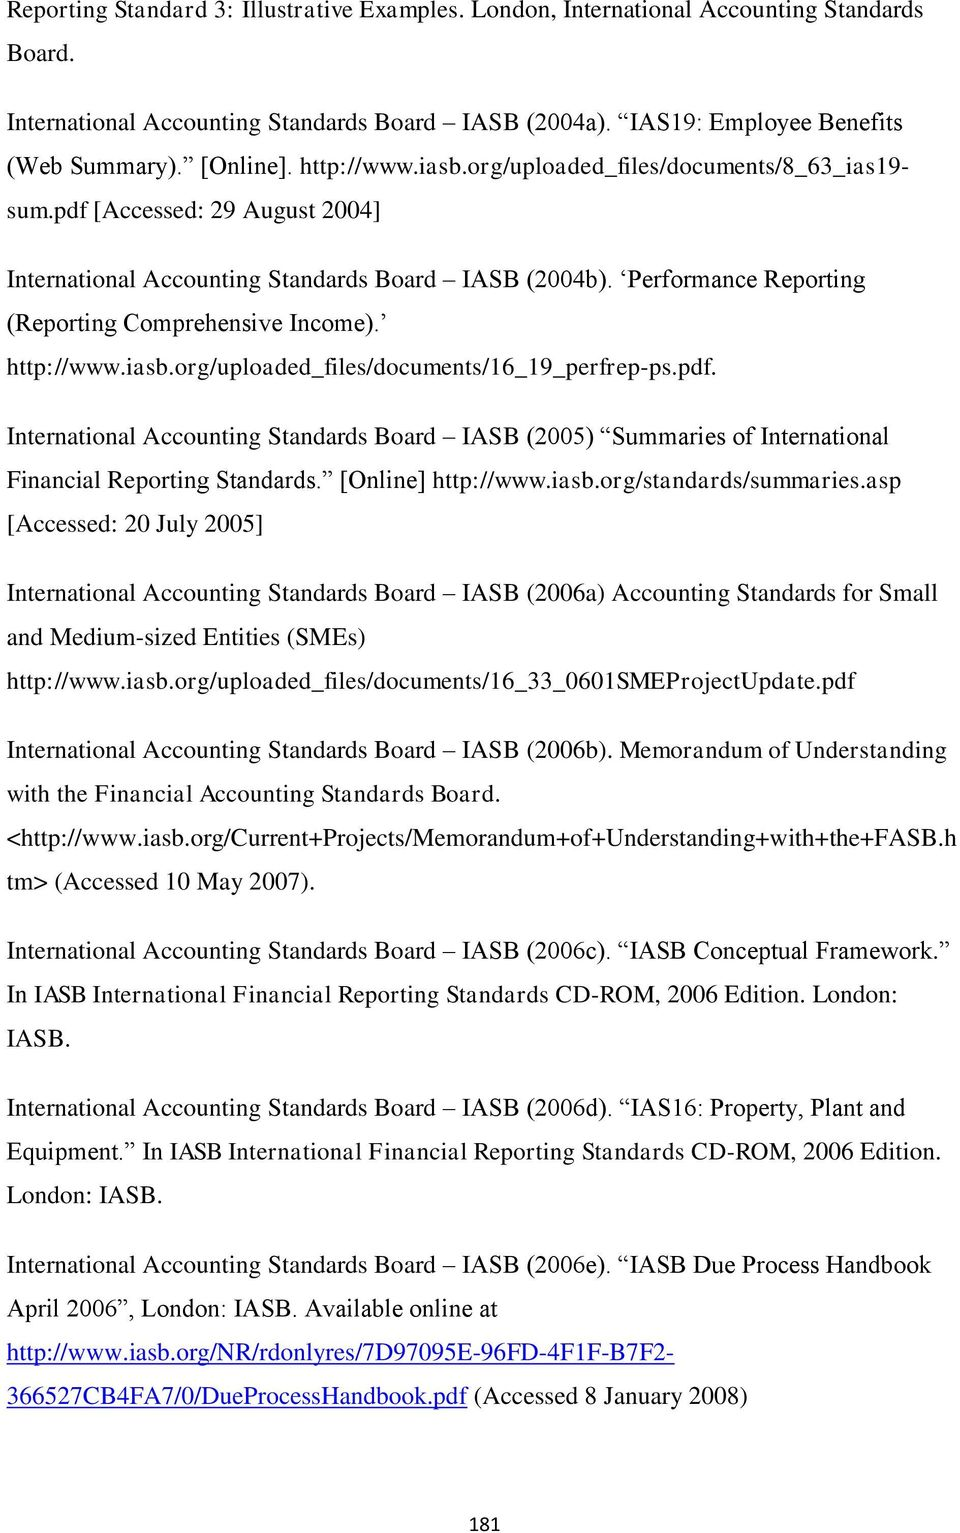 Performance Reporting (Reporting Comprehensive Income). http://www.iasb.org/uploaded_files/documents/16_19_perfrep-ps.pdf.